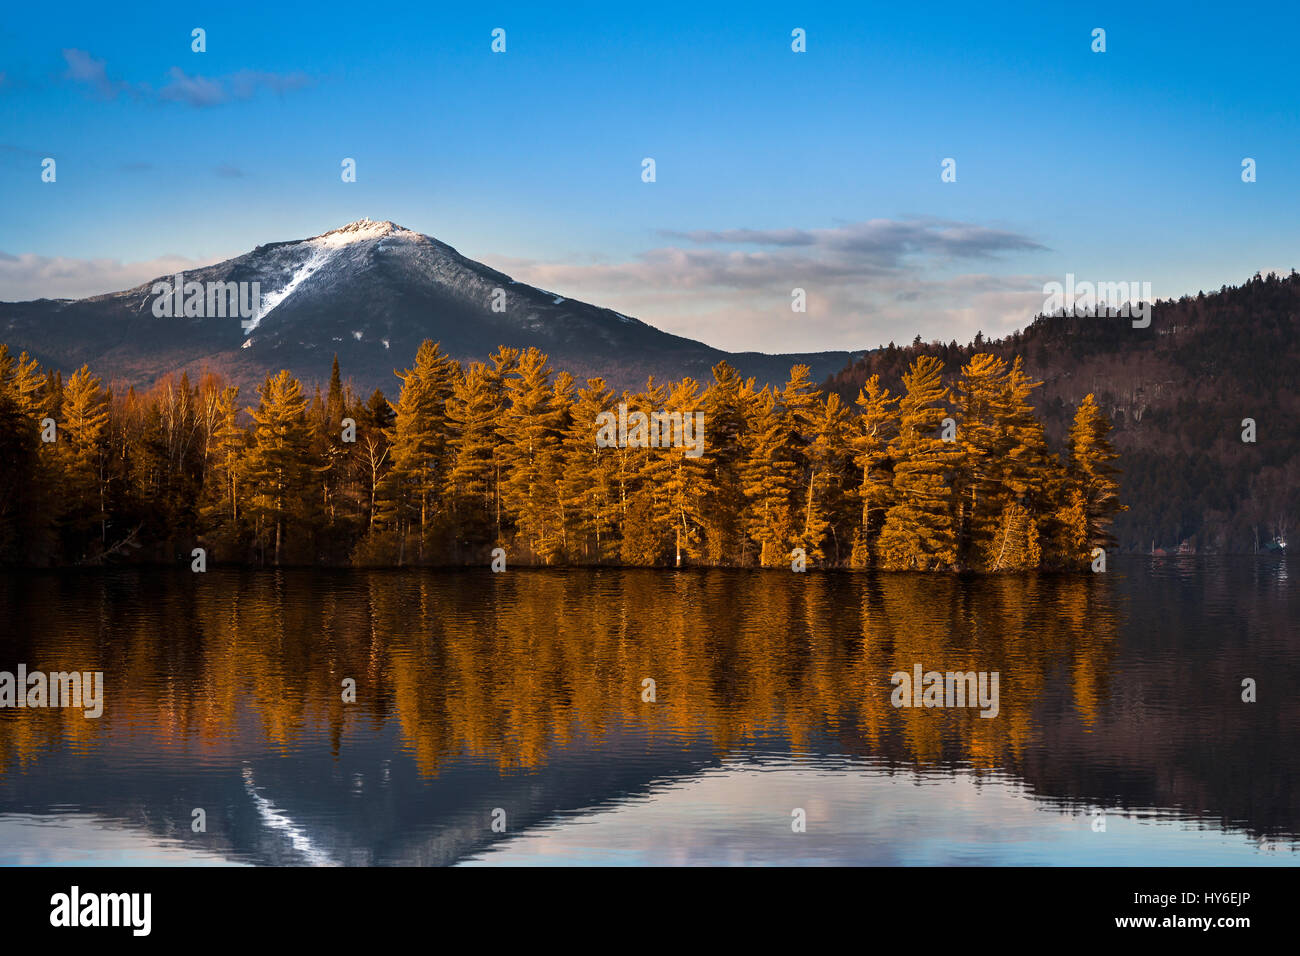 Snowy Whiteface mountain with reflections in Paradox Bay, Lake Placid, Upstate New York Stock Photo